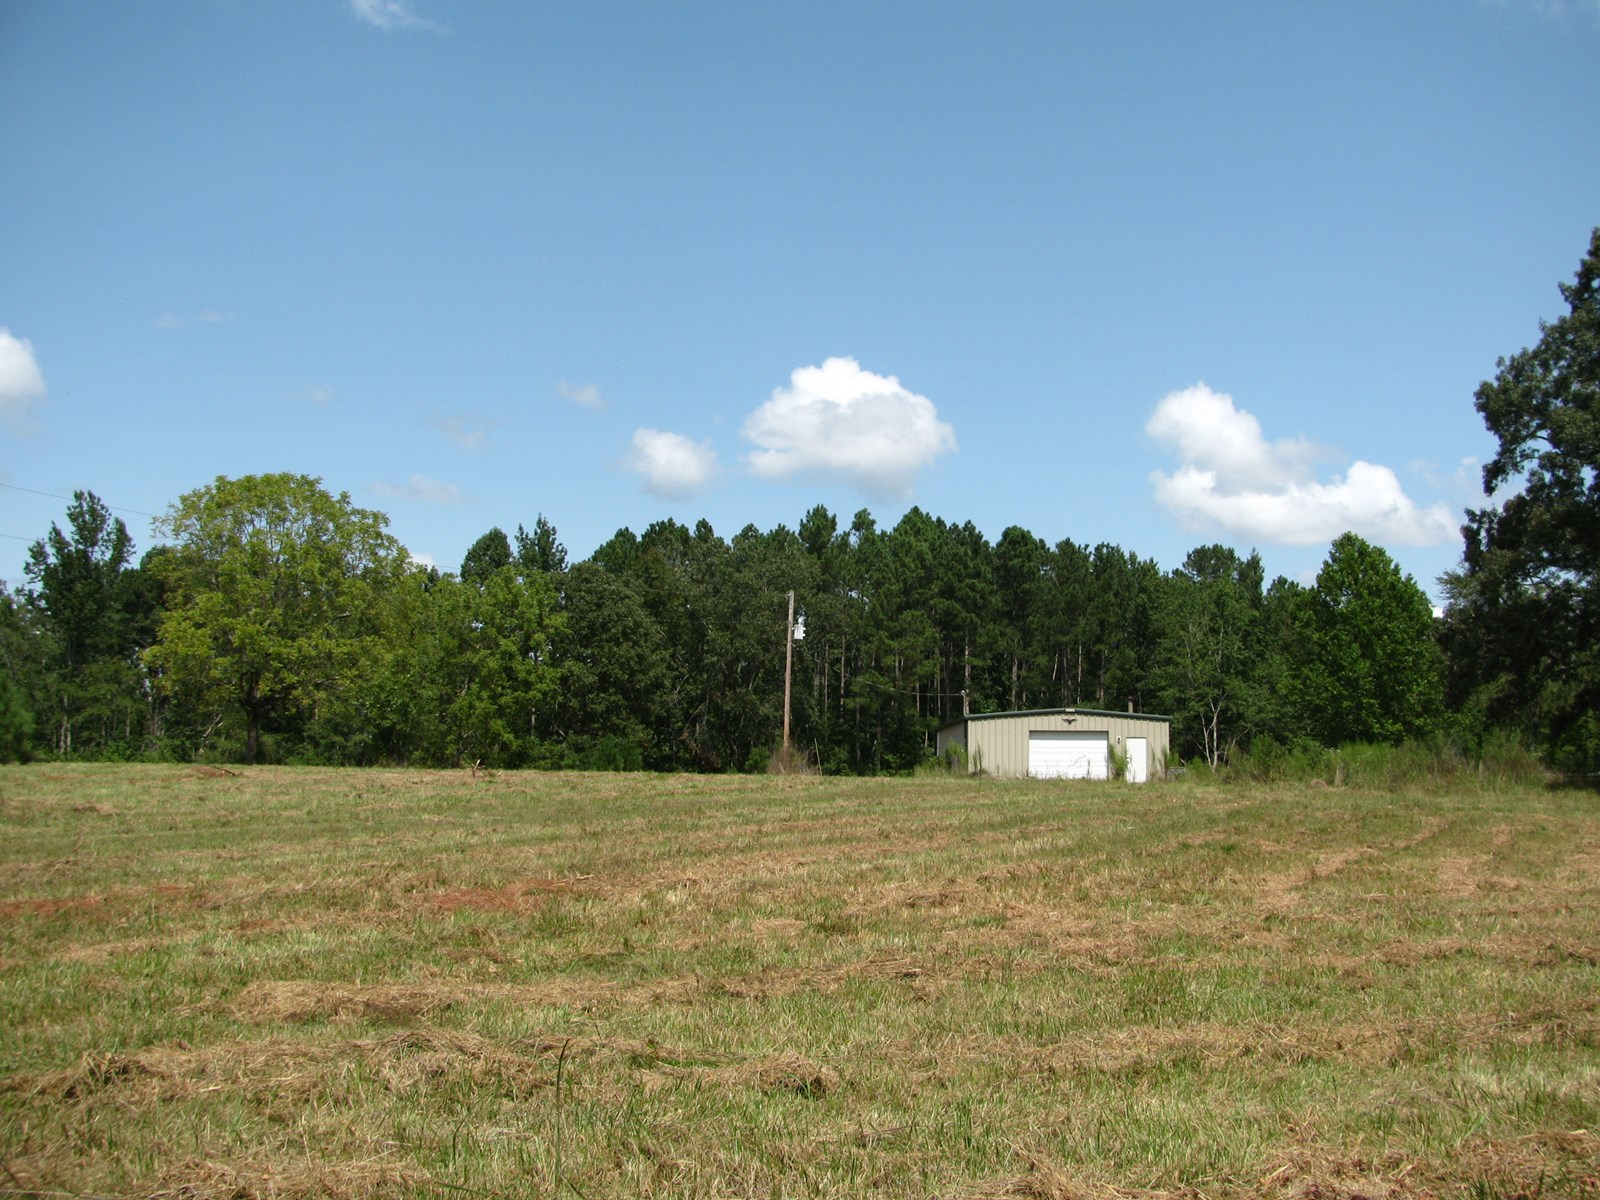 LAND FOR SALE WITH SHOP, POND, FENCING, WOODS, NEAR TN RIVER